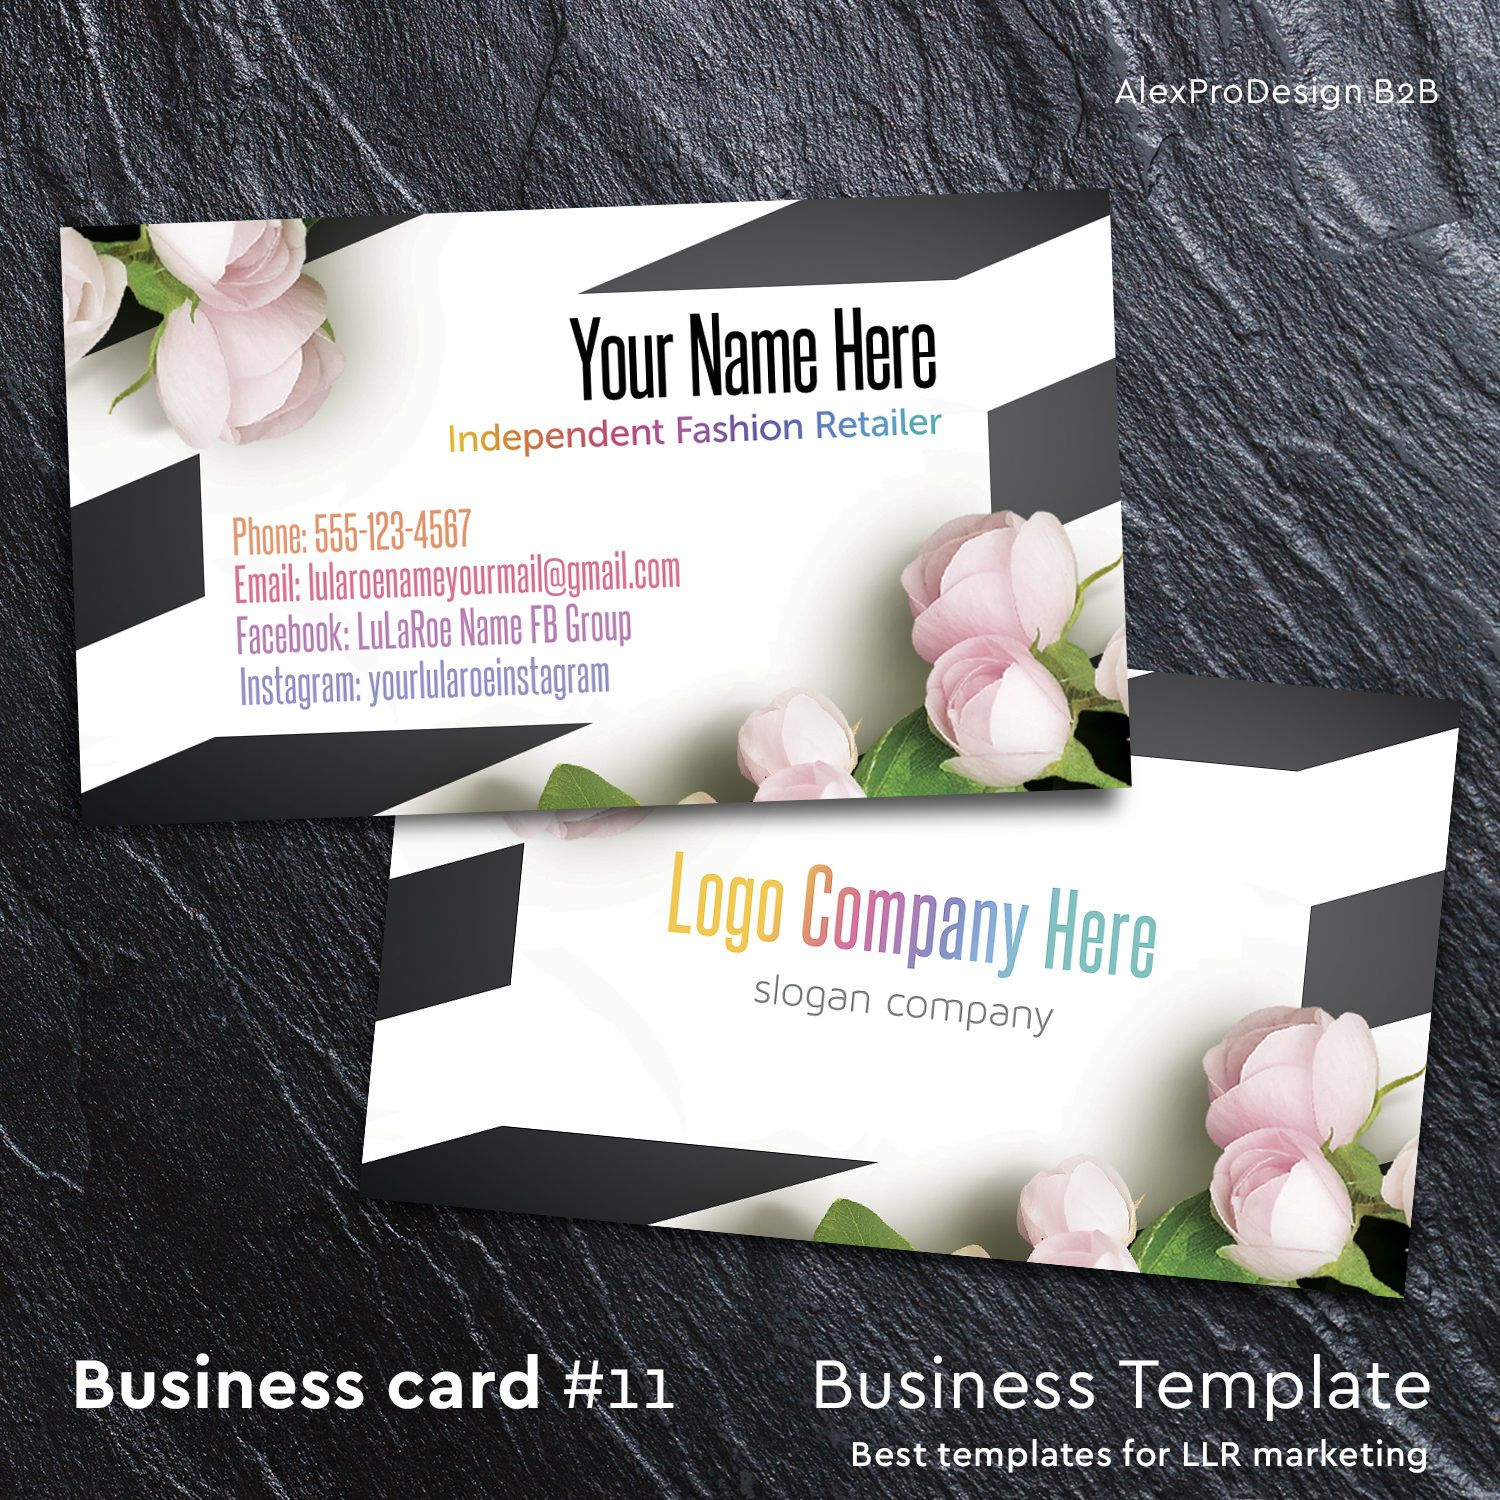 Llr business card custom business cards for fashion consultant llr business card custom business cards for fashion consultant retailer home office approved fonts color for lularoe ratailer card by on etsy reheart Choice Image